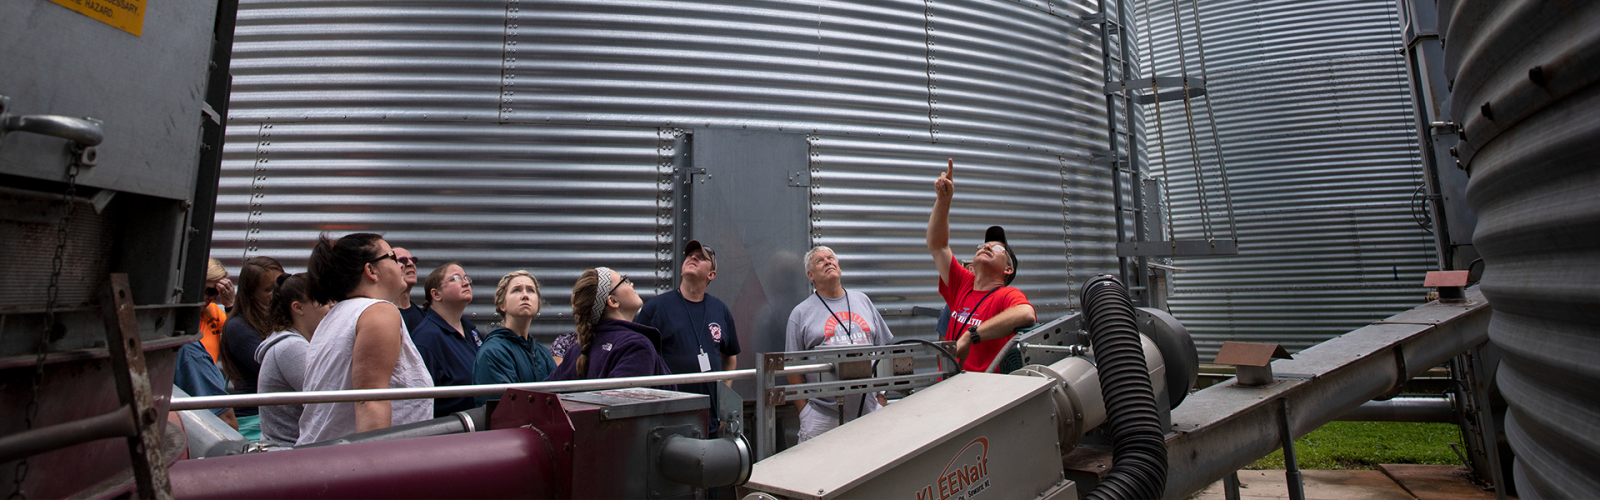 Jeff Nelson leading a group through grain bins at the Arlington ARS EMT training